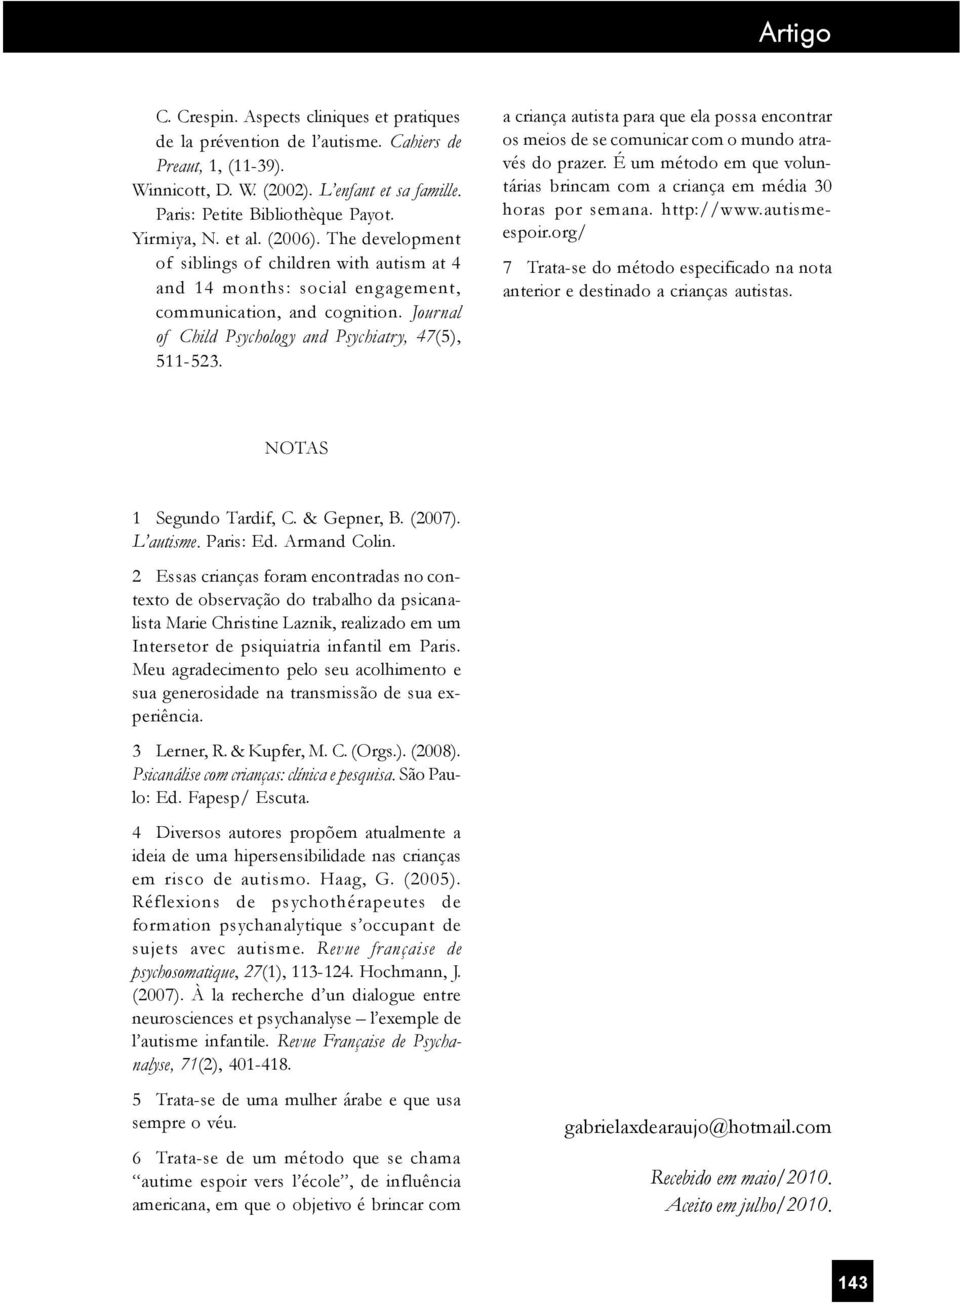 Journal of Child Psychology and Psychiatry, 47(5), 511-523. a criança autista para que ela possa encontrar os meios de se comunicar com o mundo através do prazer.